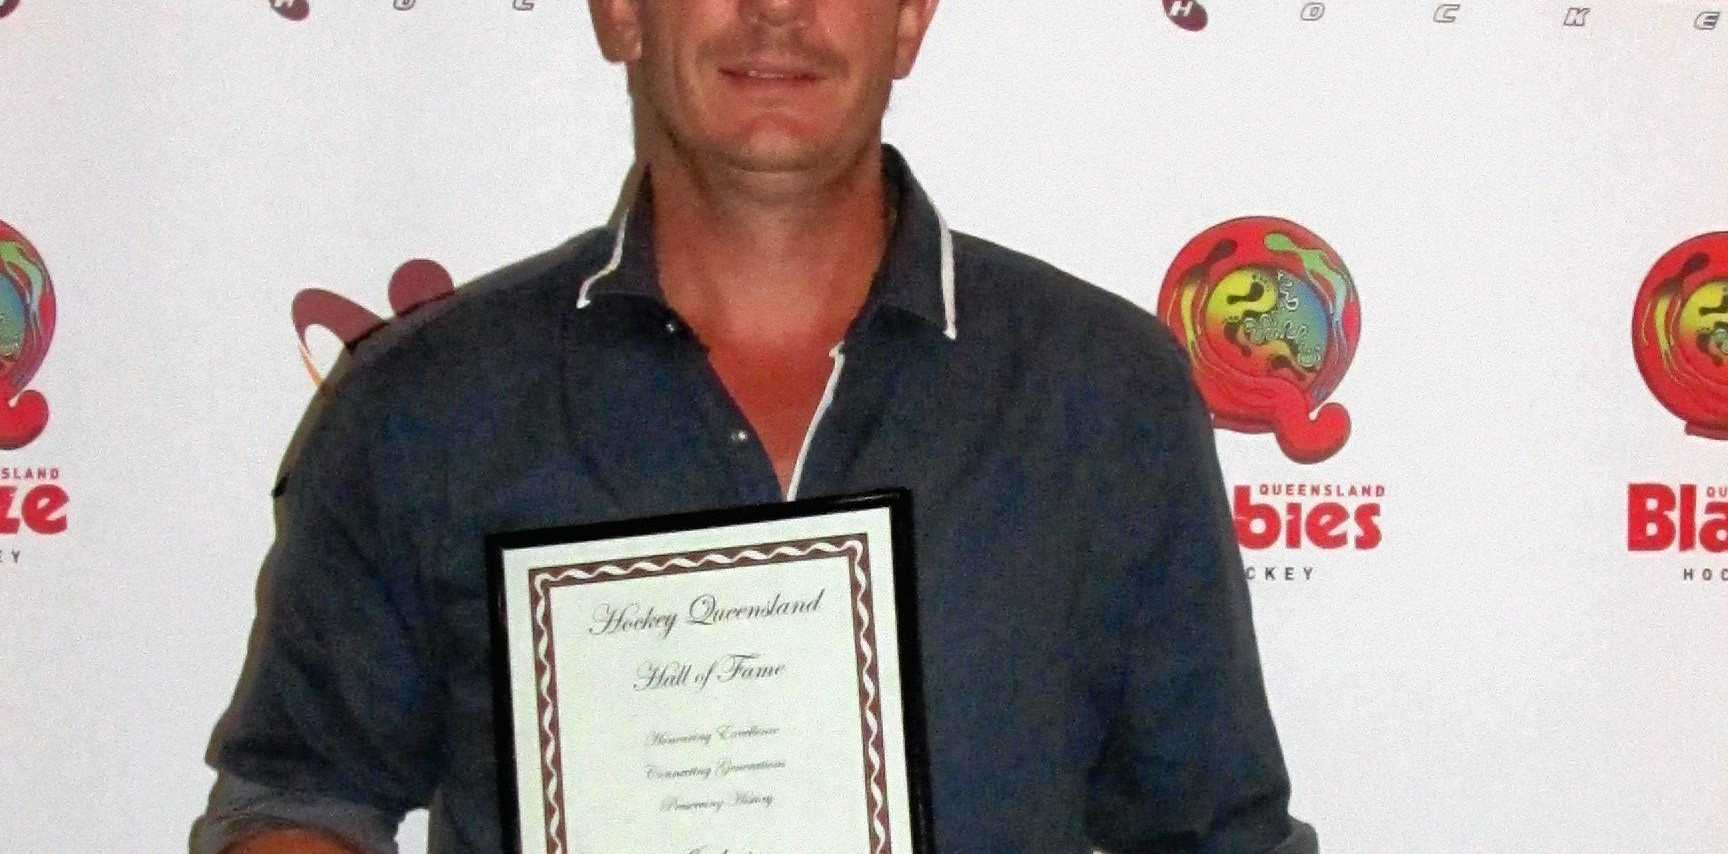 PREVIOUS WINNER: Hockey Queensland Hall of Fame inductee Dean Butler was the first overall junior winner in the  Daily News /Warwick Credit Union Sports Awards.